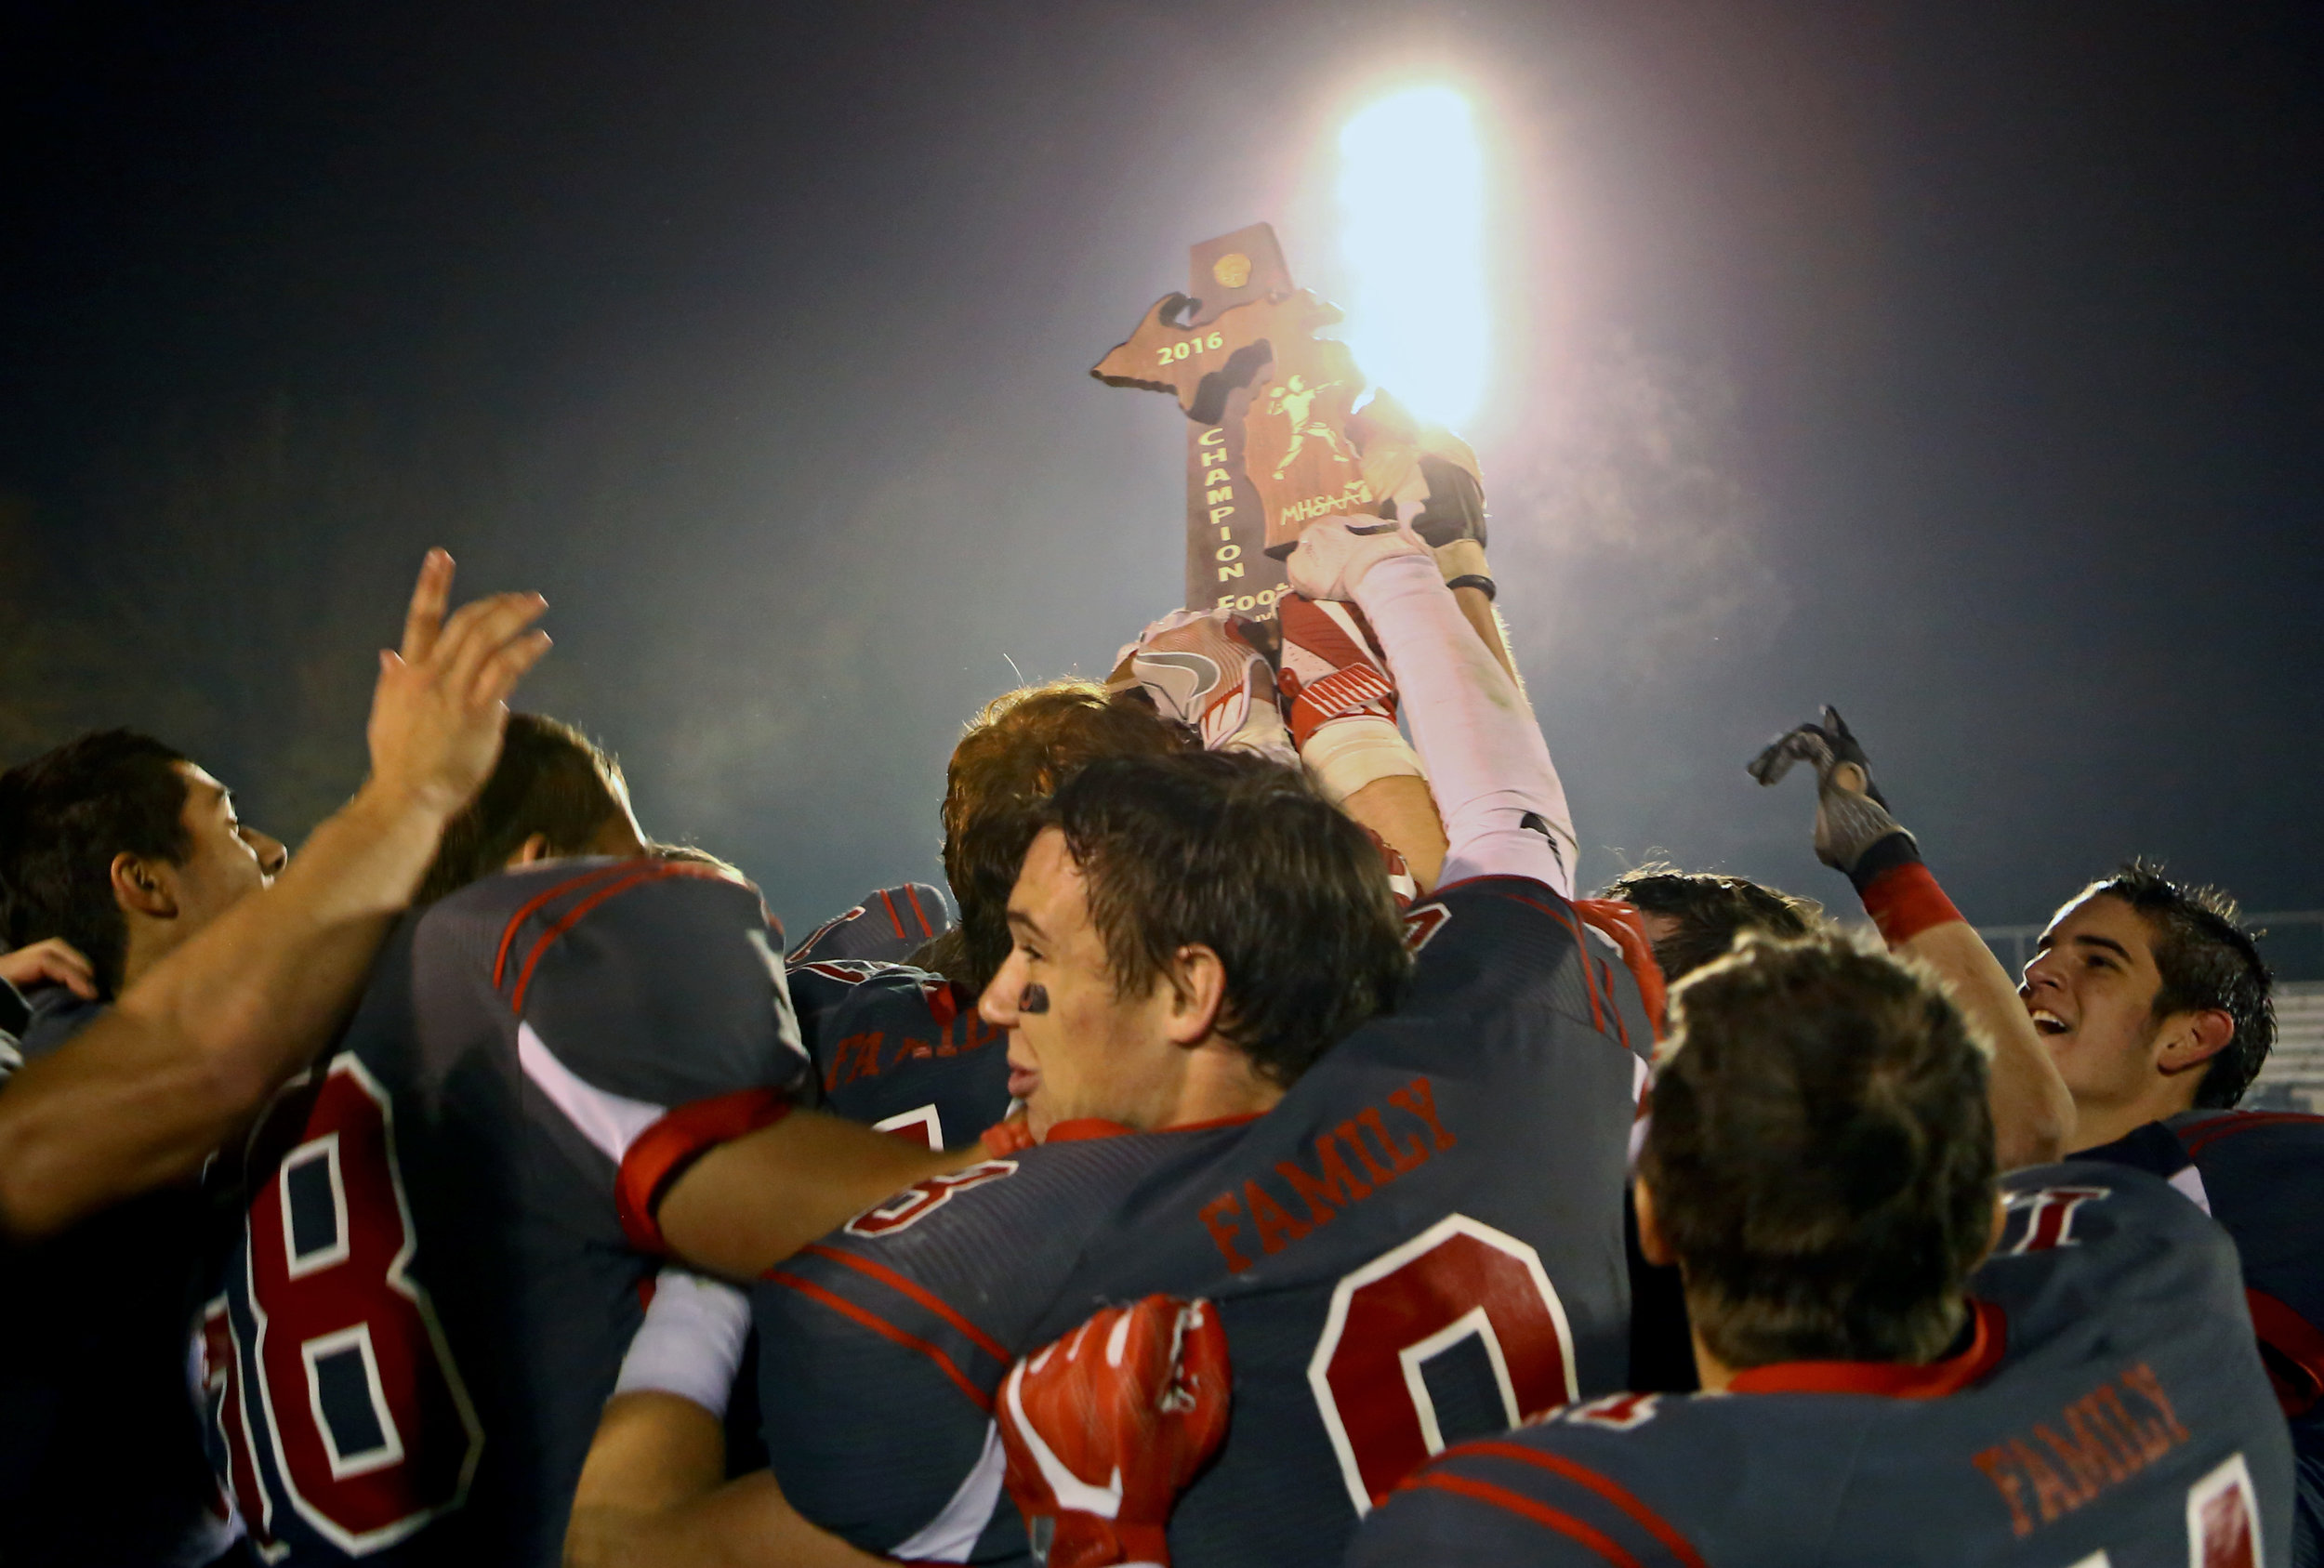 Members of the Bedford High School football team celebrate after receiving the MSHAA Div. 2 Champions trophy after their 39-22 victory over Franklin High School at Bedford High School in Temperance, Mi. on Friday, Nov. 4, 2016.